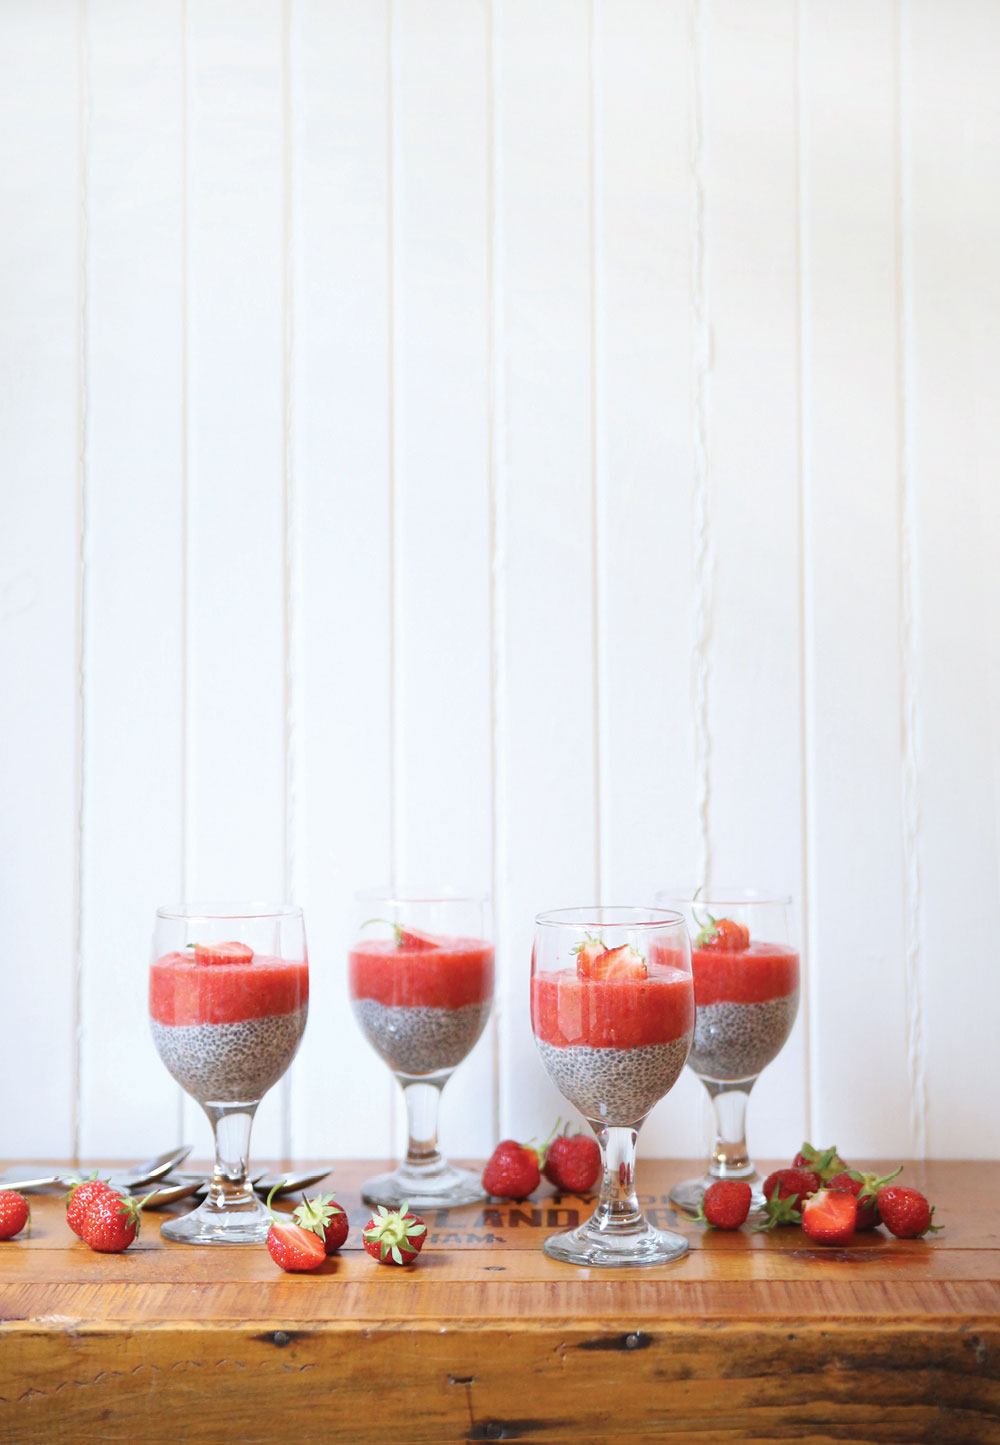 Strawberry-Puree-Chia-Pudding-Pure-Ella-Leche3